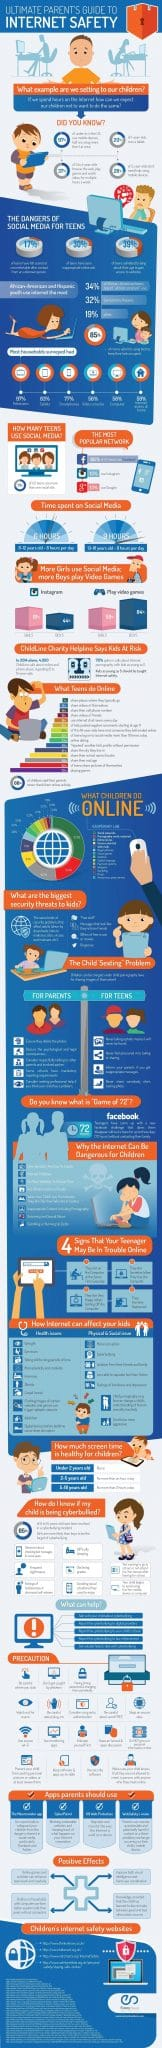 How to keep our kids safe online